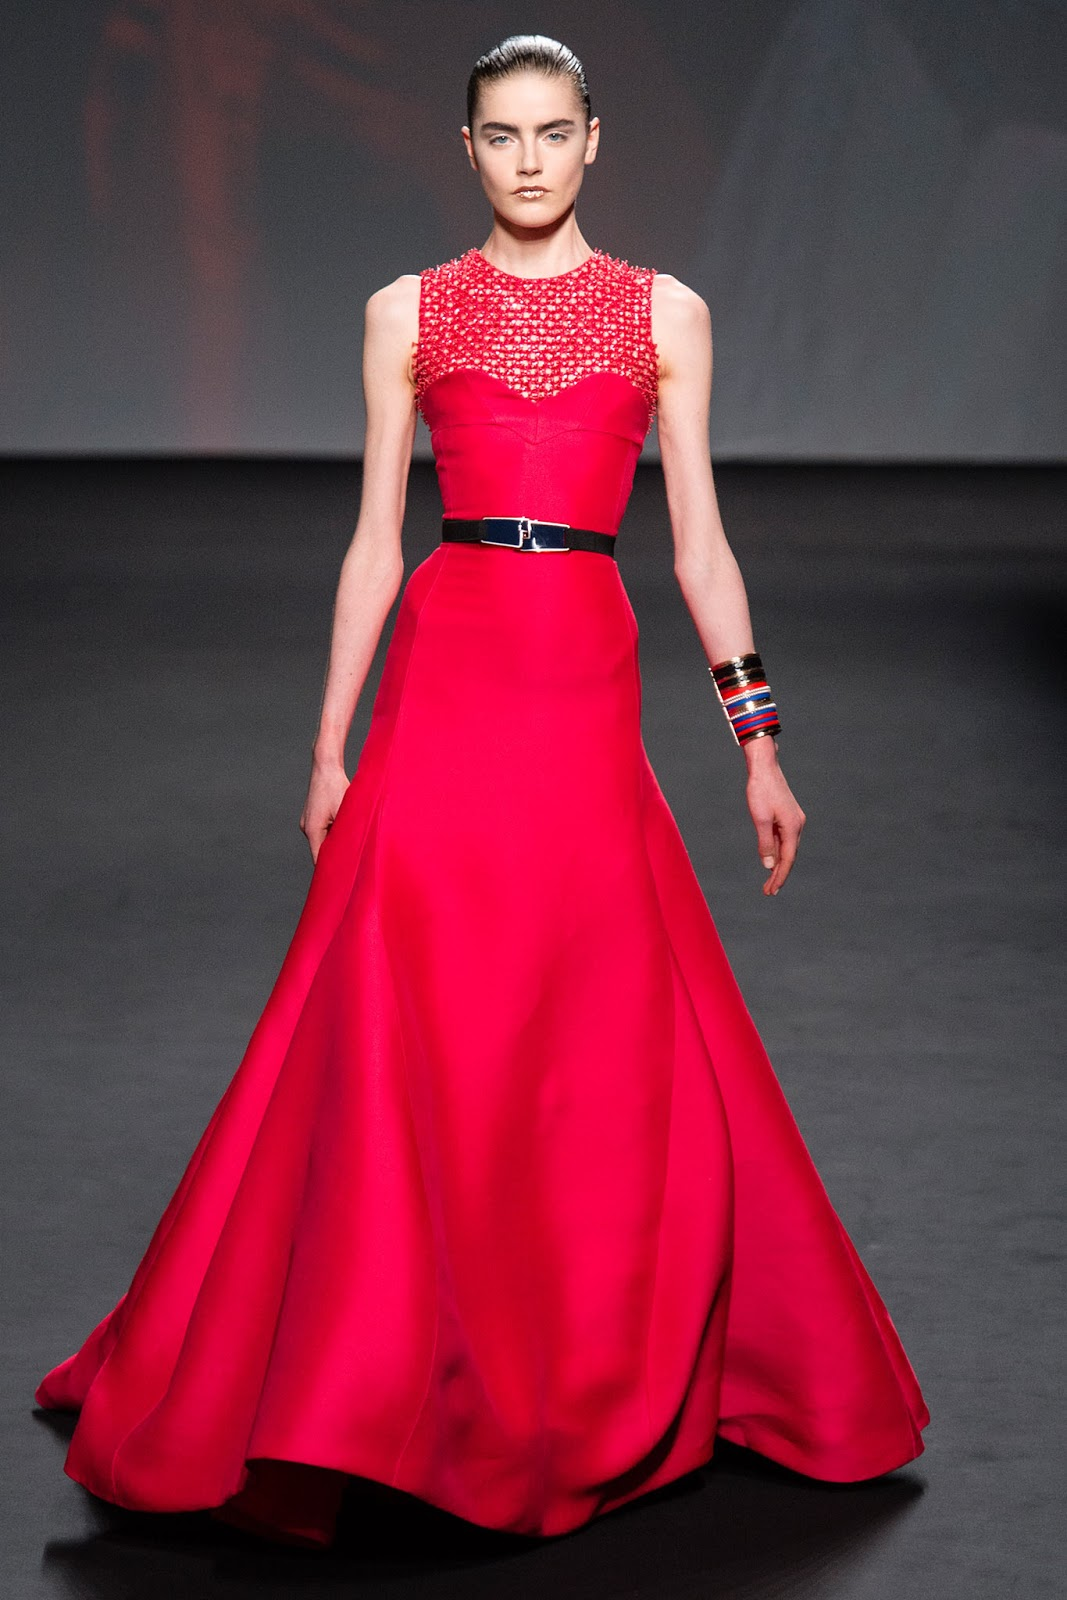 Christian dior haute couture fall winter 2014 44 for 2014 haute couture